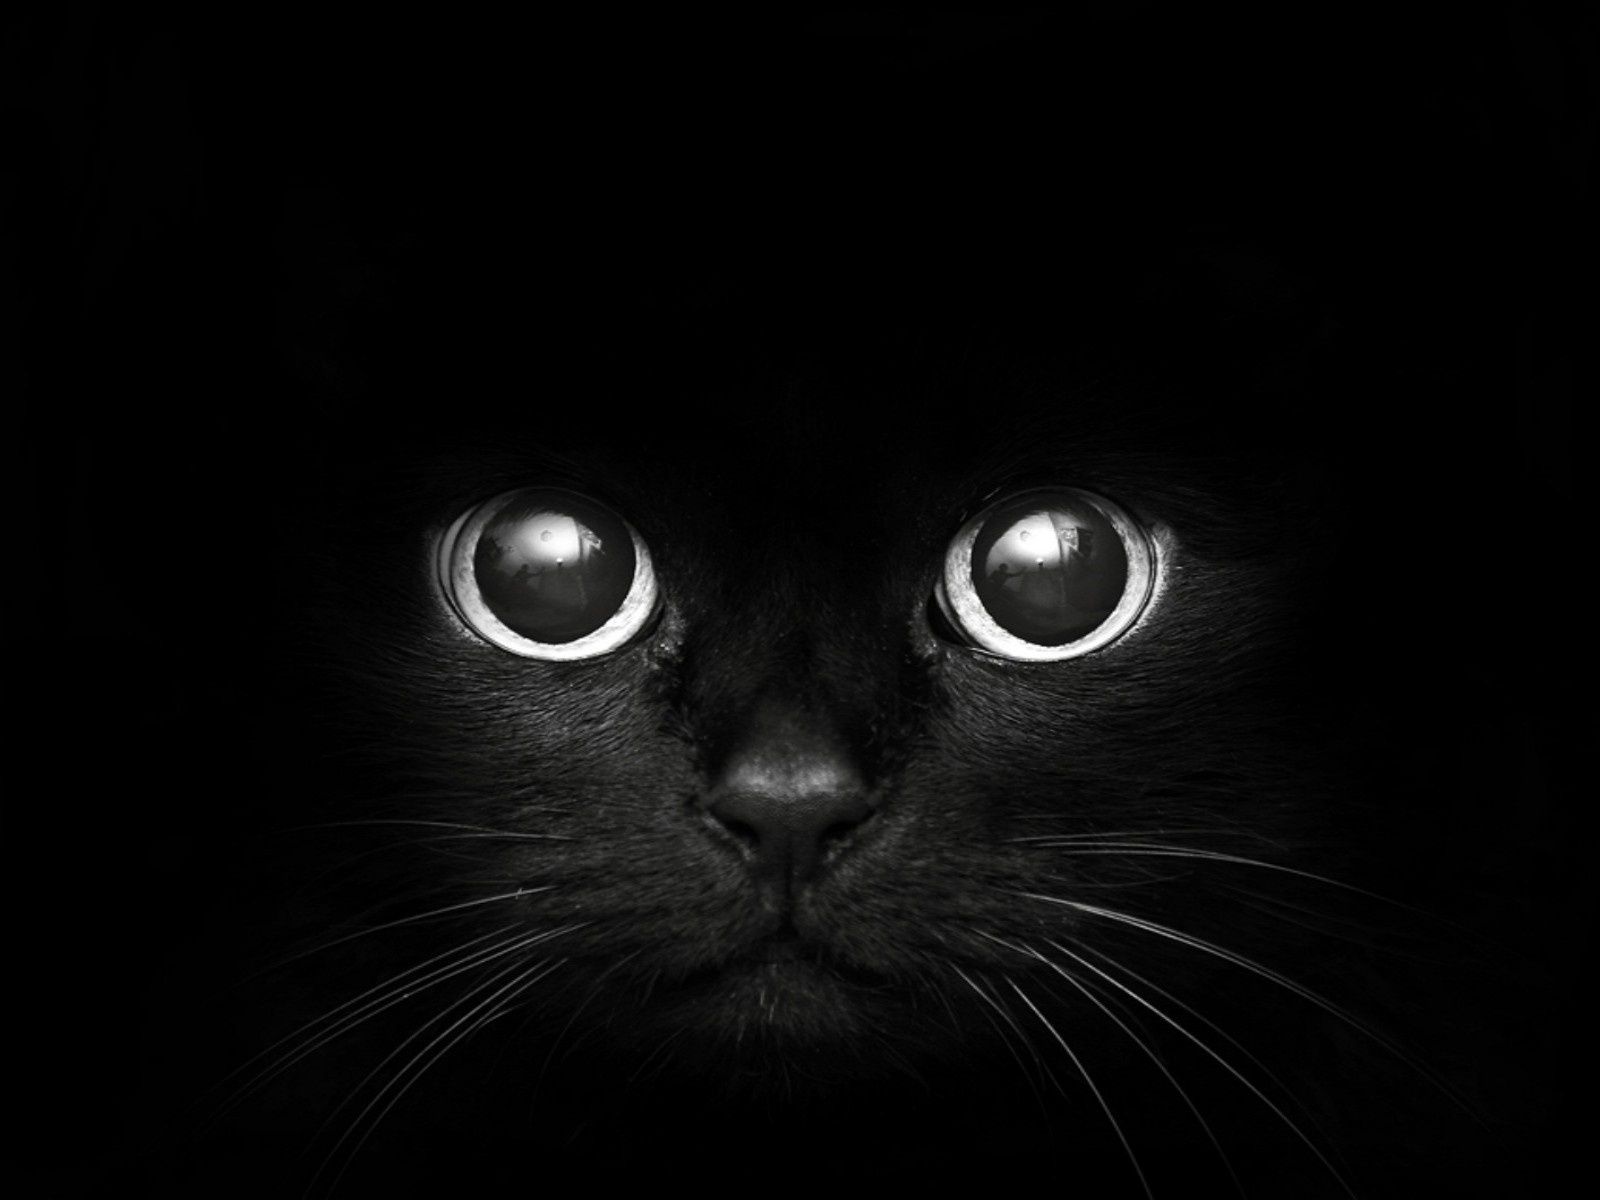 Black Eyes Wallpaper Beautiful Wallpapers Cat And